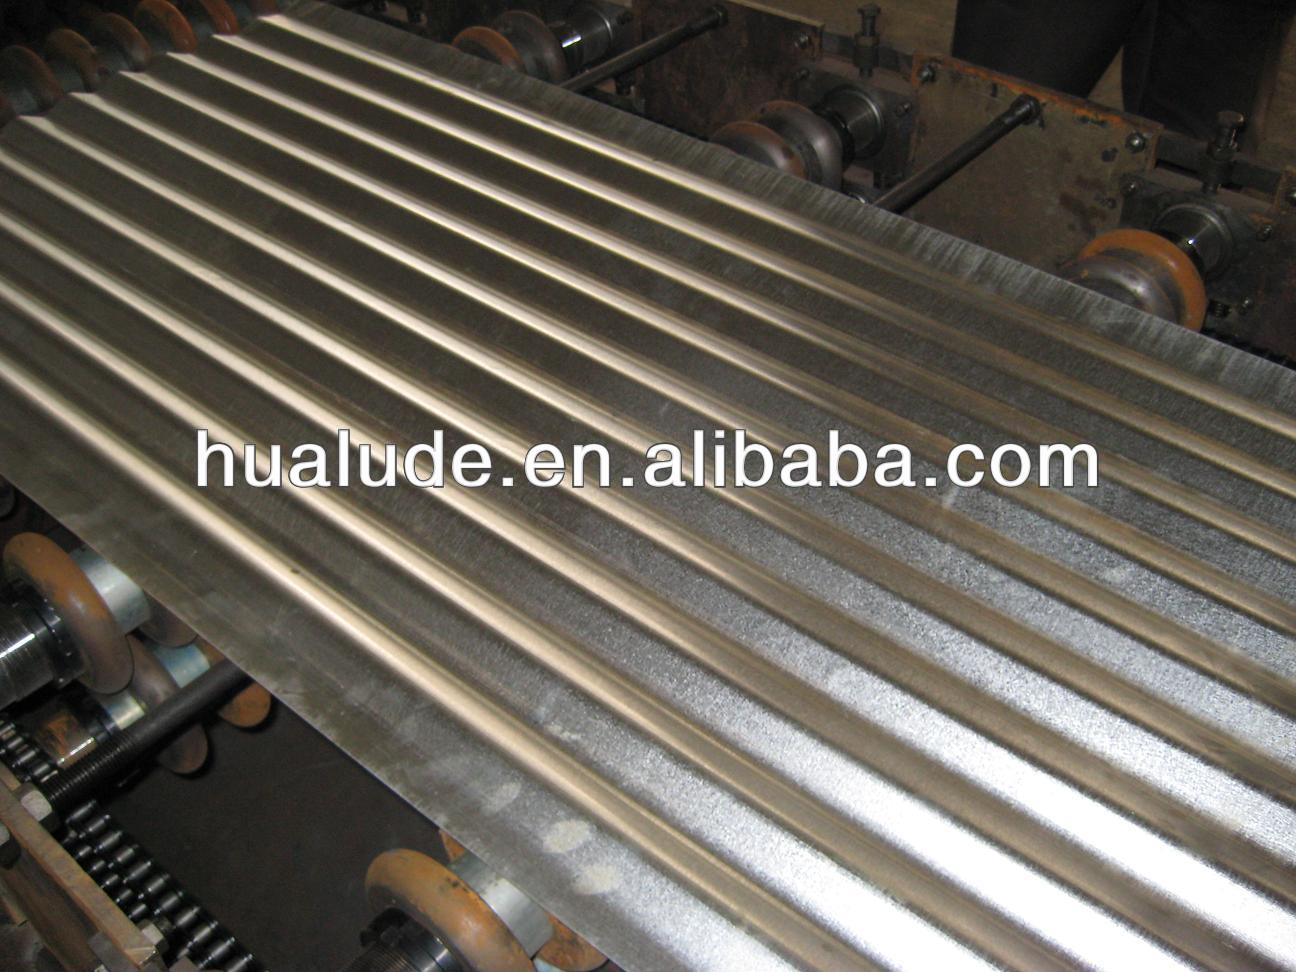 galvanized corrugated me roofing sheet sale